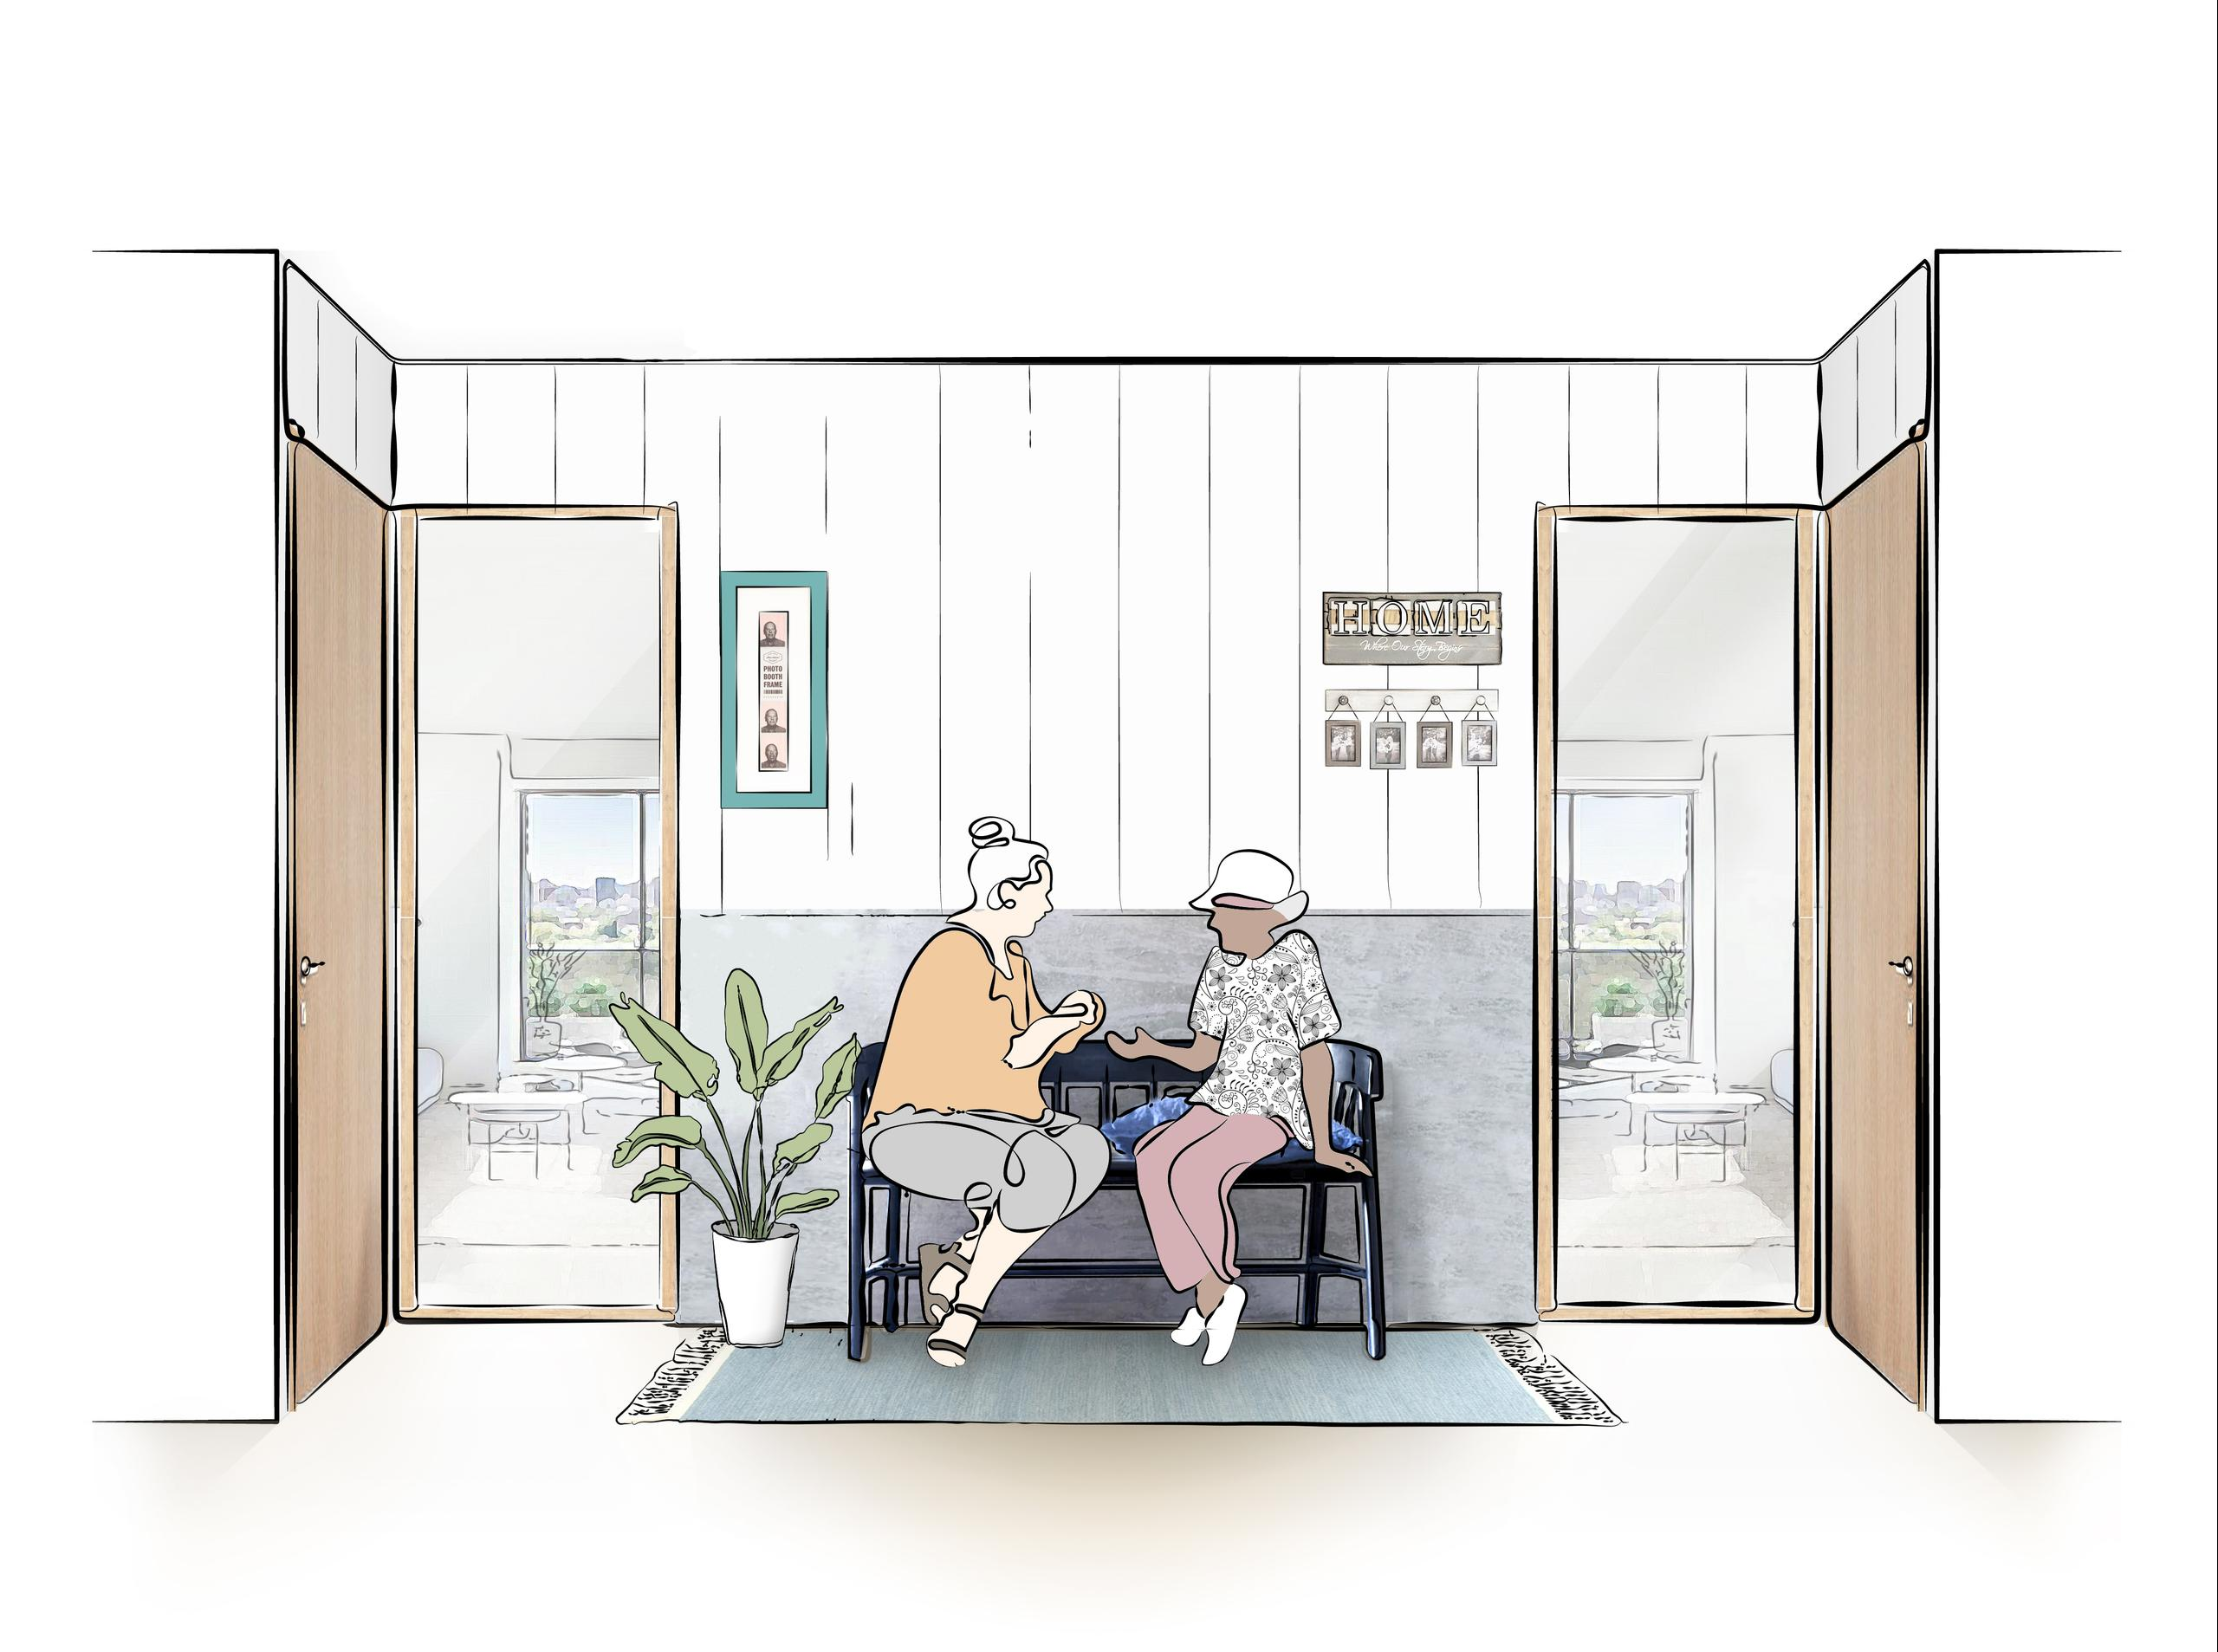 """rendering of a """"porch"""" style seating area with personalized decor in a condo hallway, with two older ladies conversing on the bench between their units"""